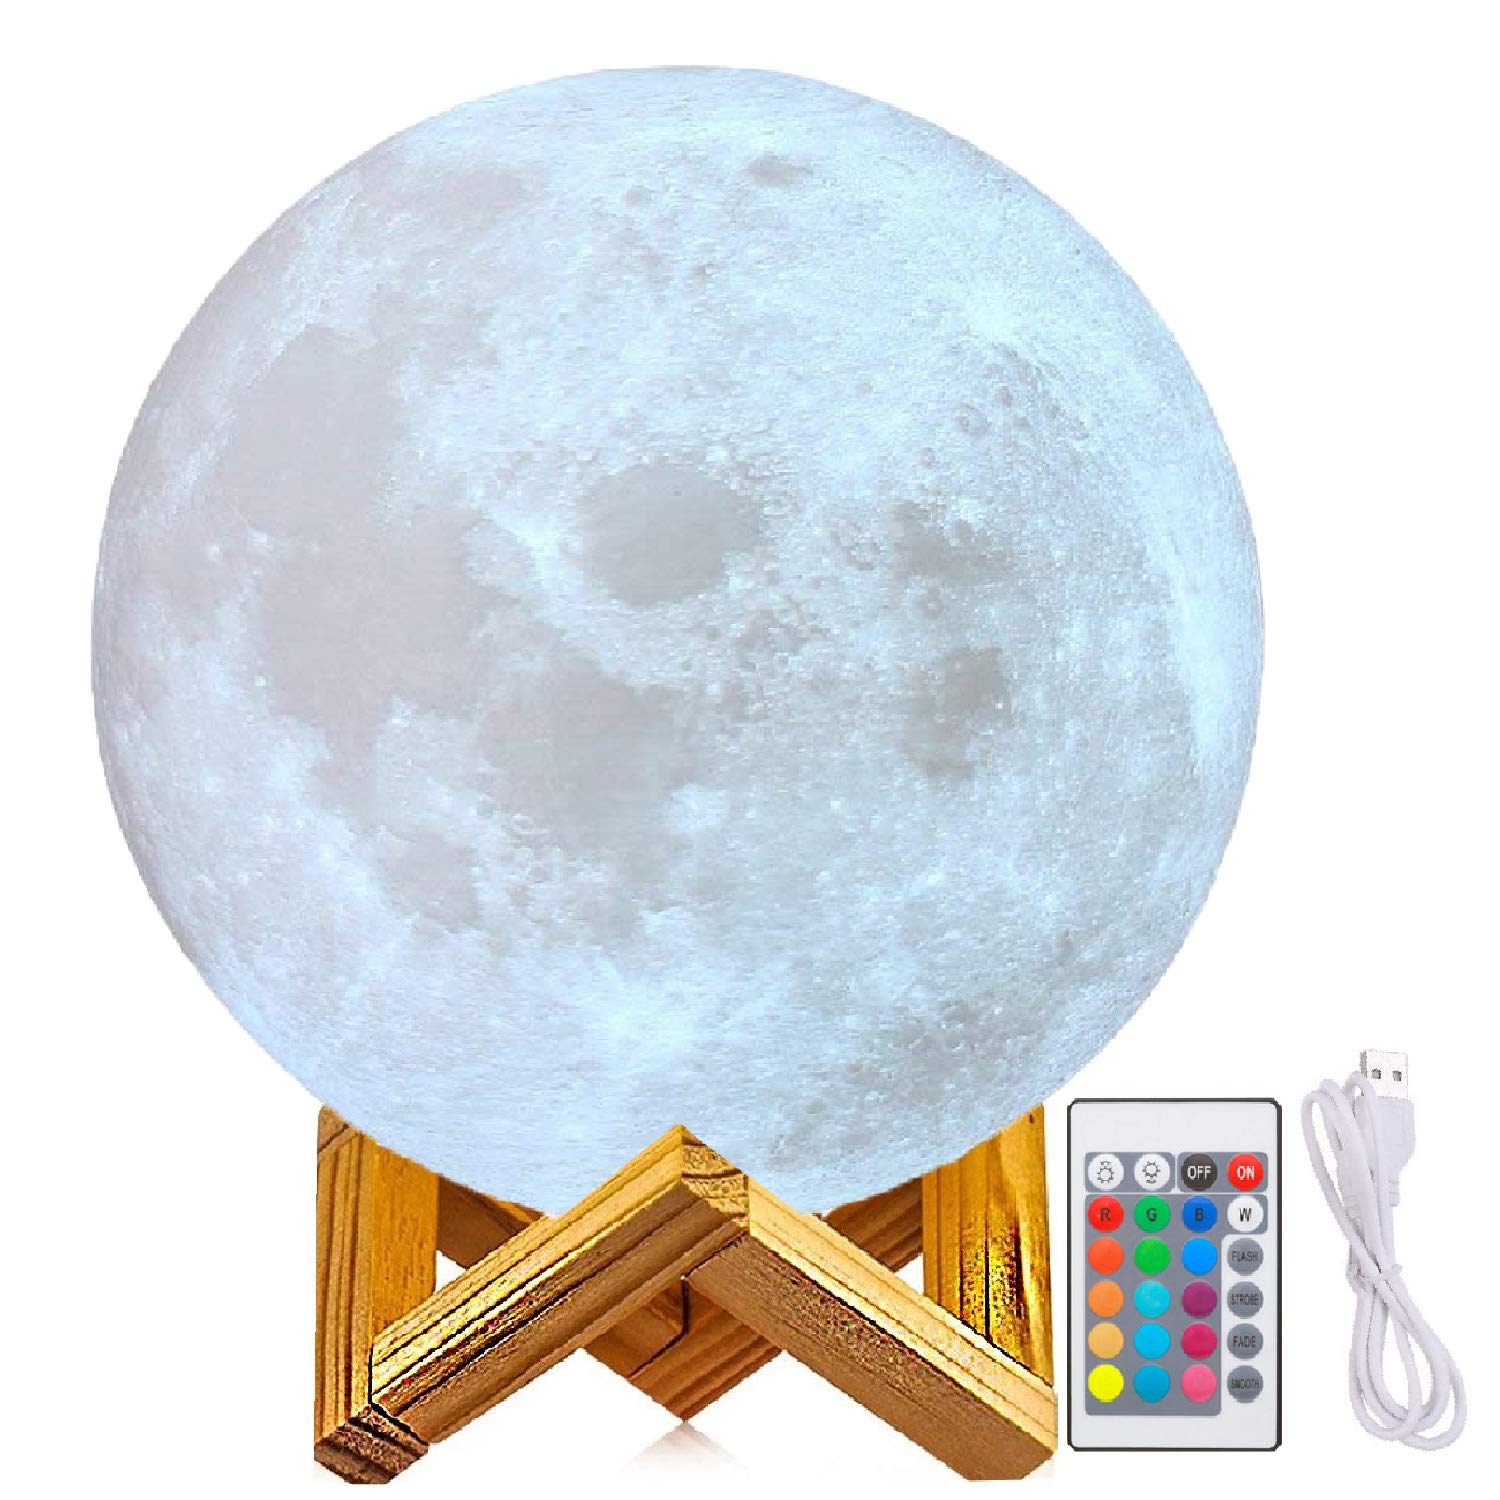 """7"""" Moon Lamp, Genuine Moon Light Lamps(6""""- 11"""")3D Printed Moon Light with Stand, The 3D Moon Lamp with LED 16 Colors, Touch Control and Remote Control(17.7CM) 7"""" Moon Lamp zhong guang mei da"""